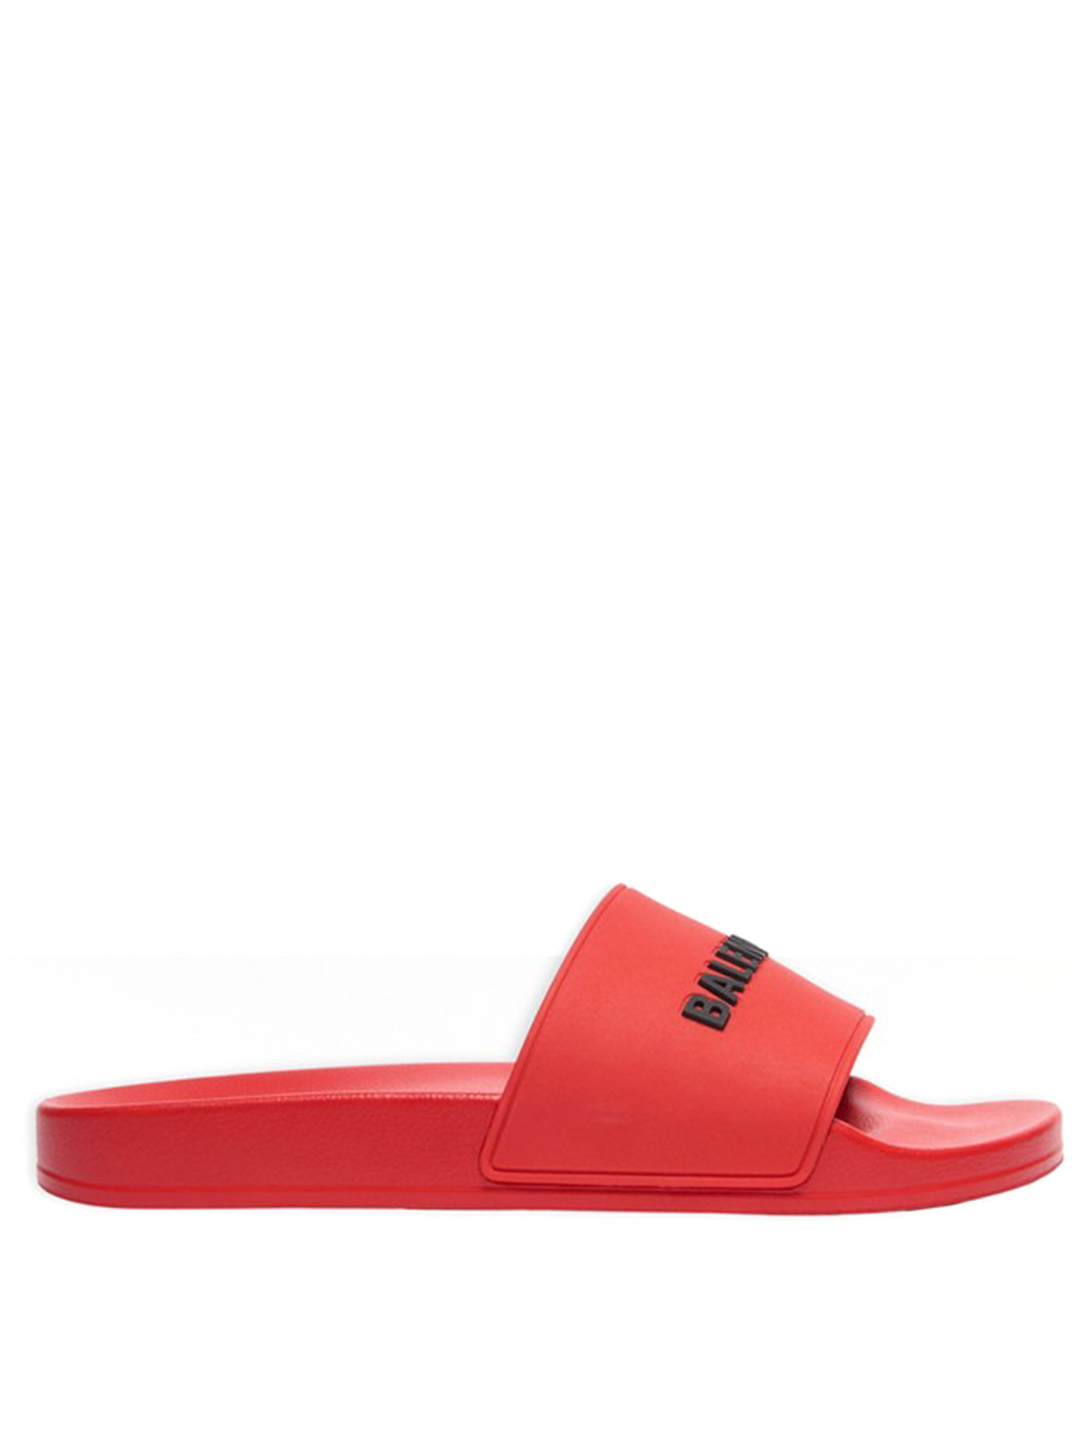 BALENCIAGA Rubber Logo Slide Sandals Men's Red